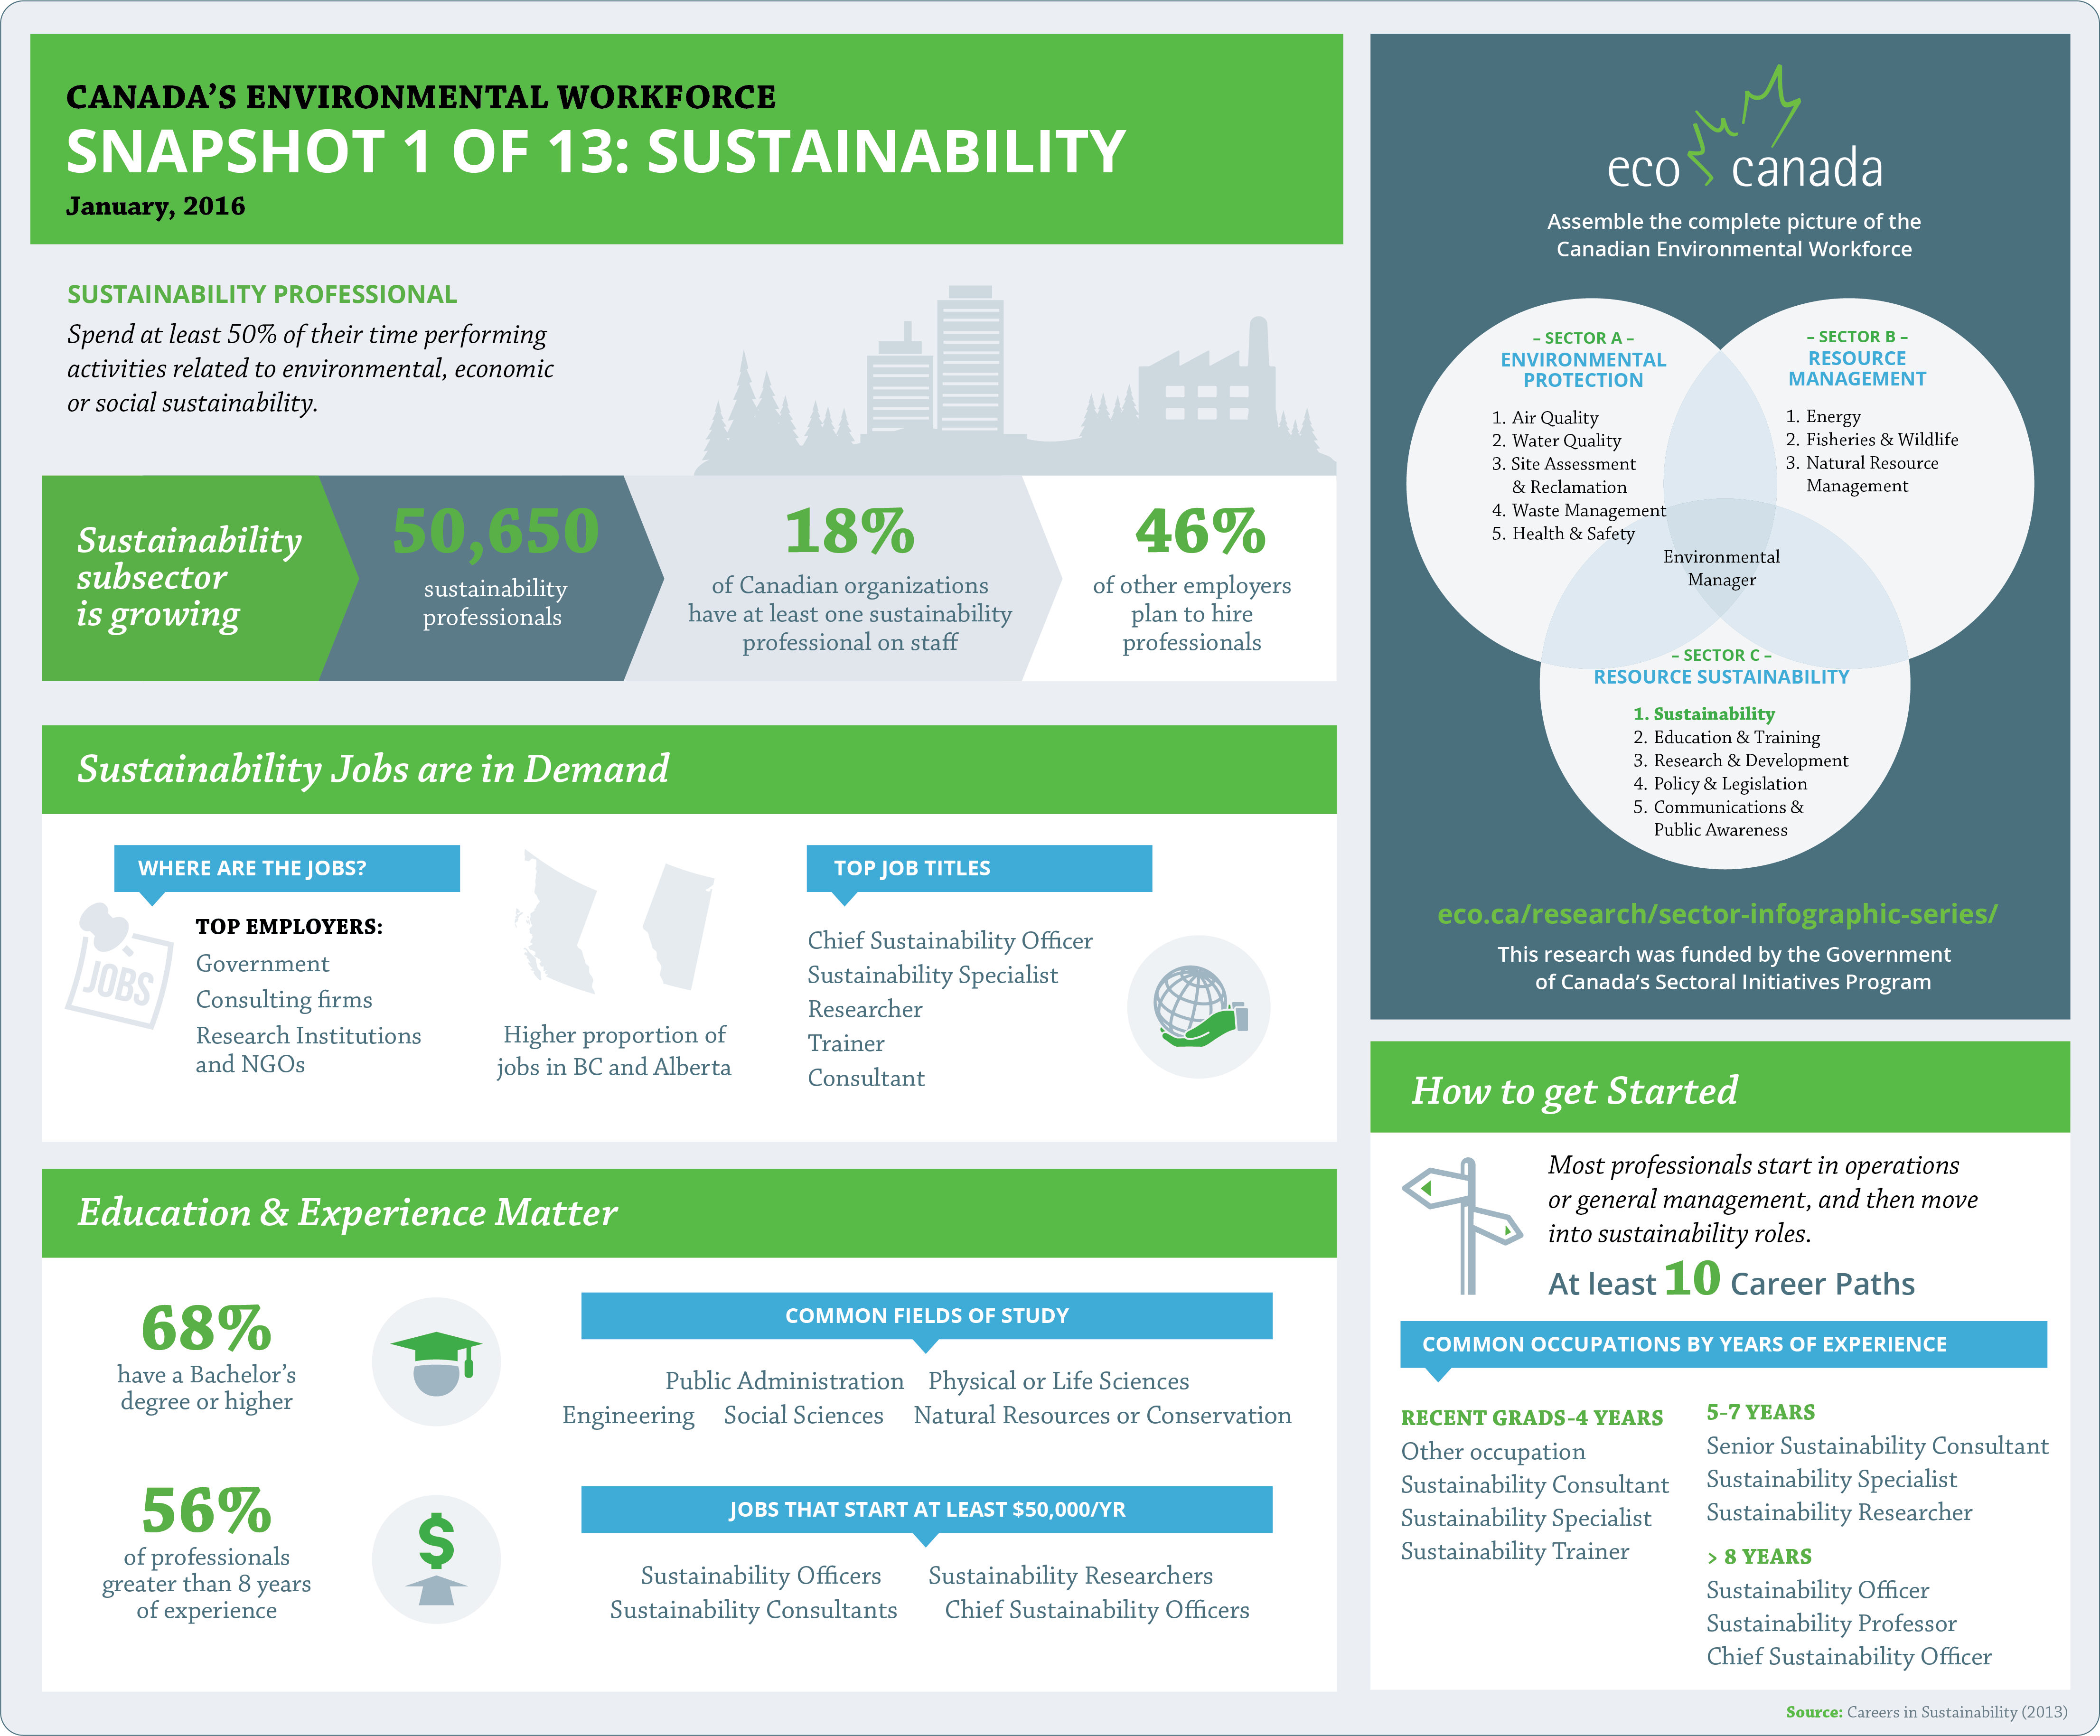 Sustainability Snapshot